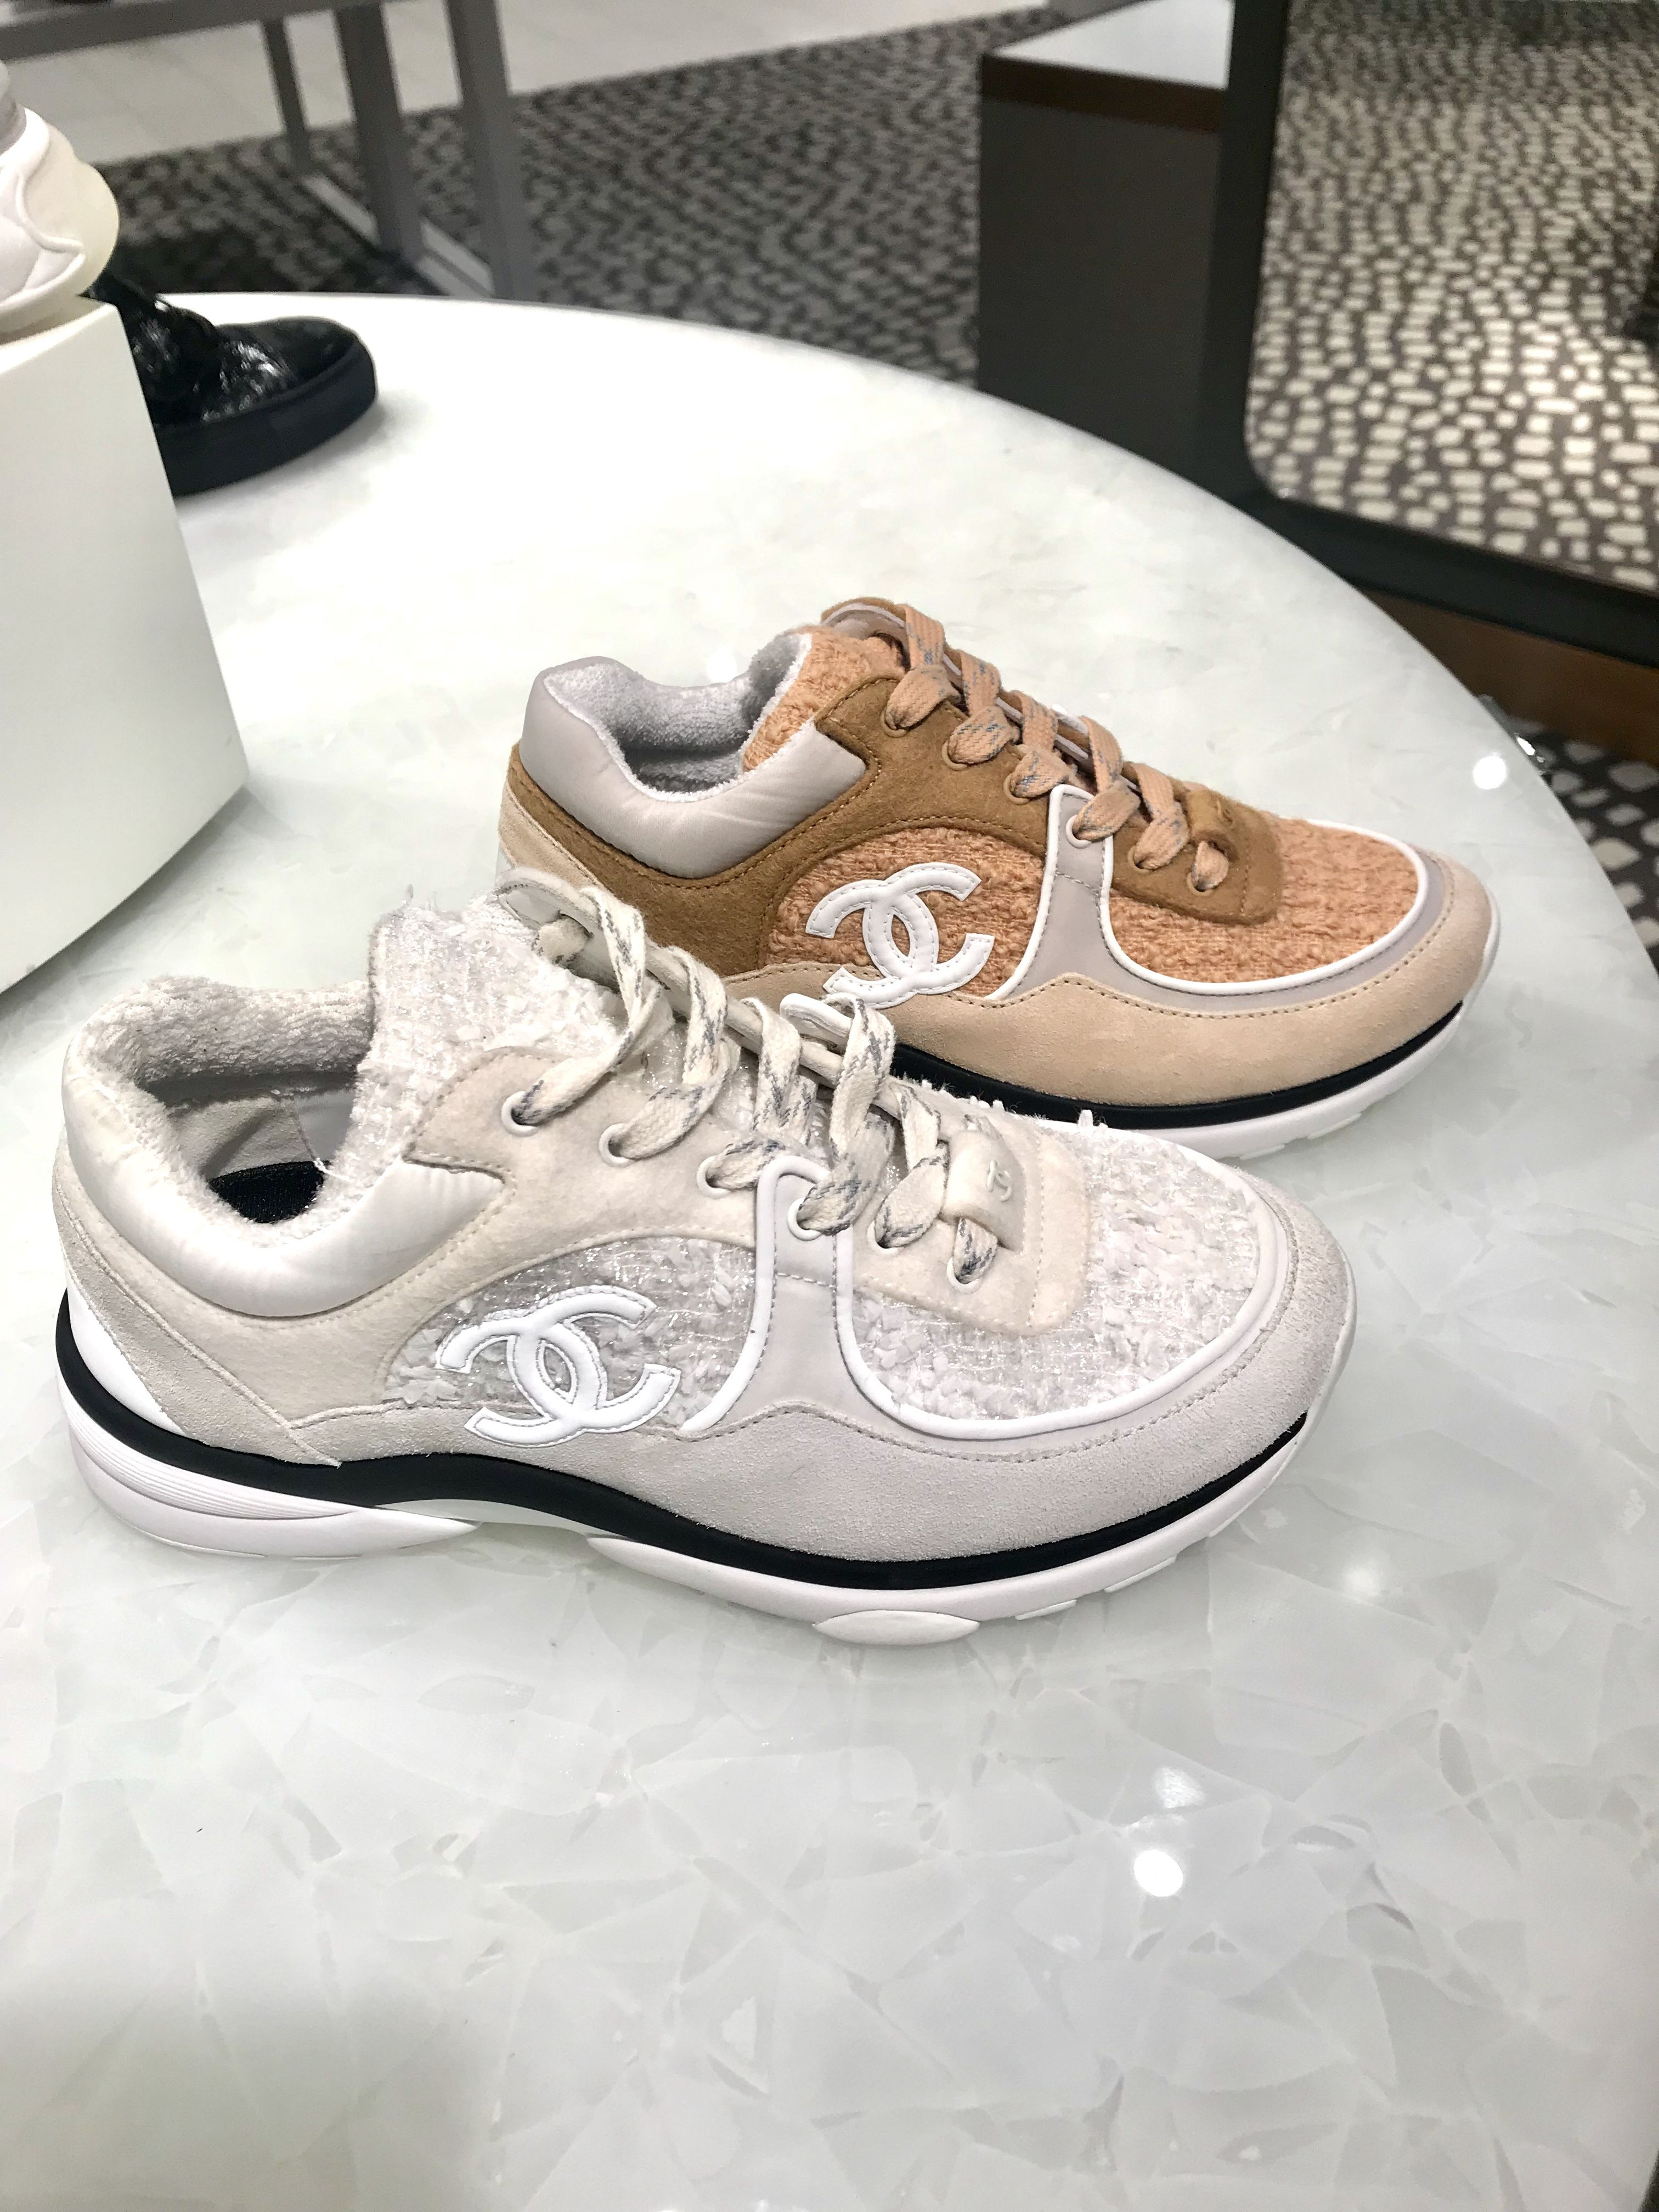 2019 Chanel White Tweed Sneakers